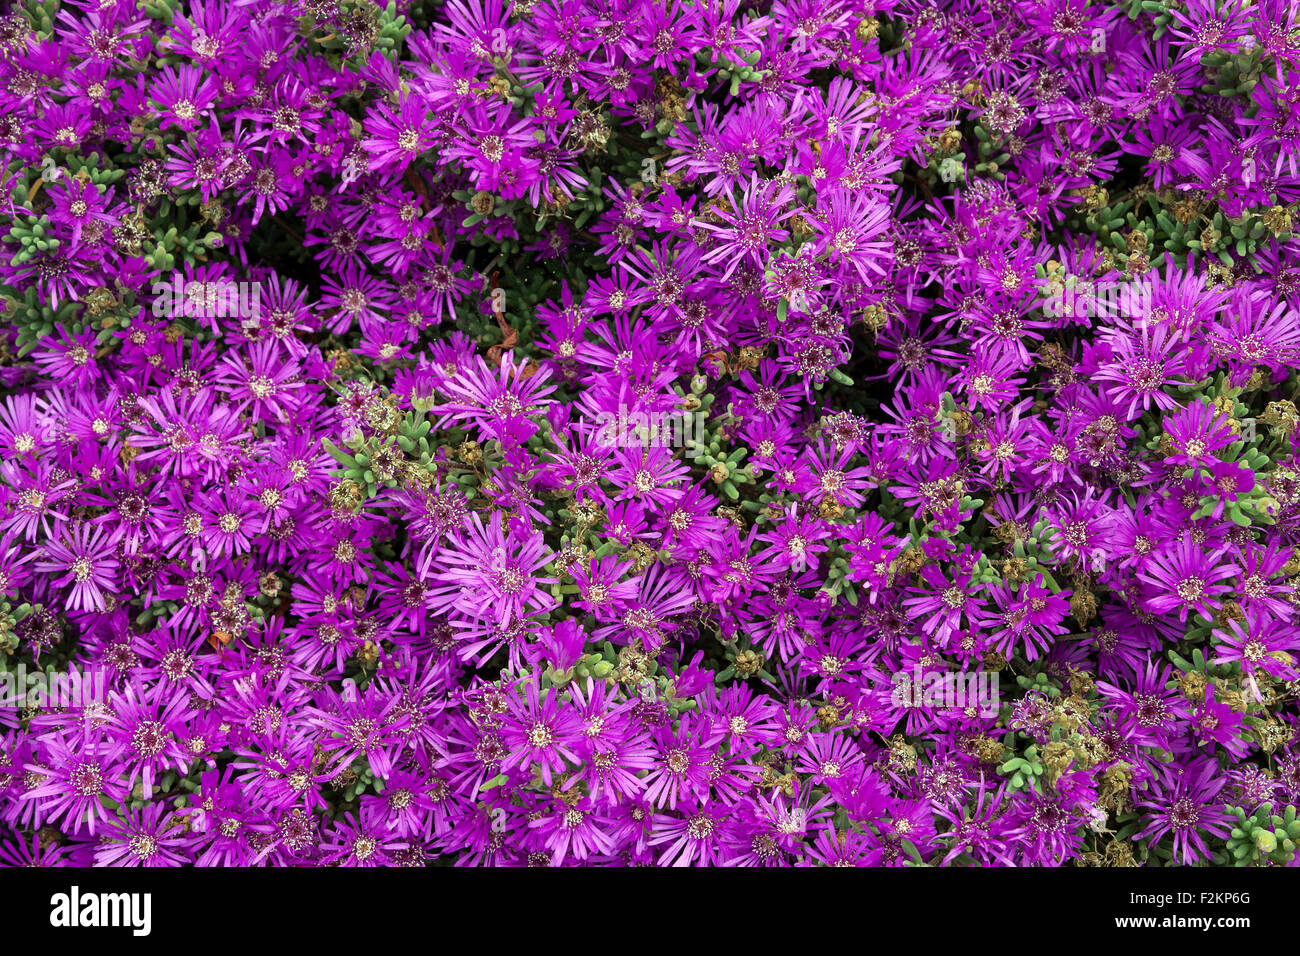 Cooperi stock photos cooperi stock images alamy for Jardin canario tafira